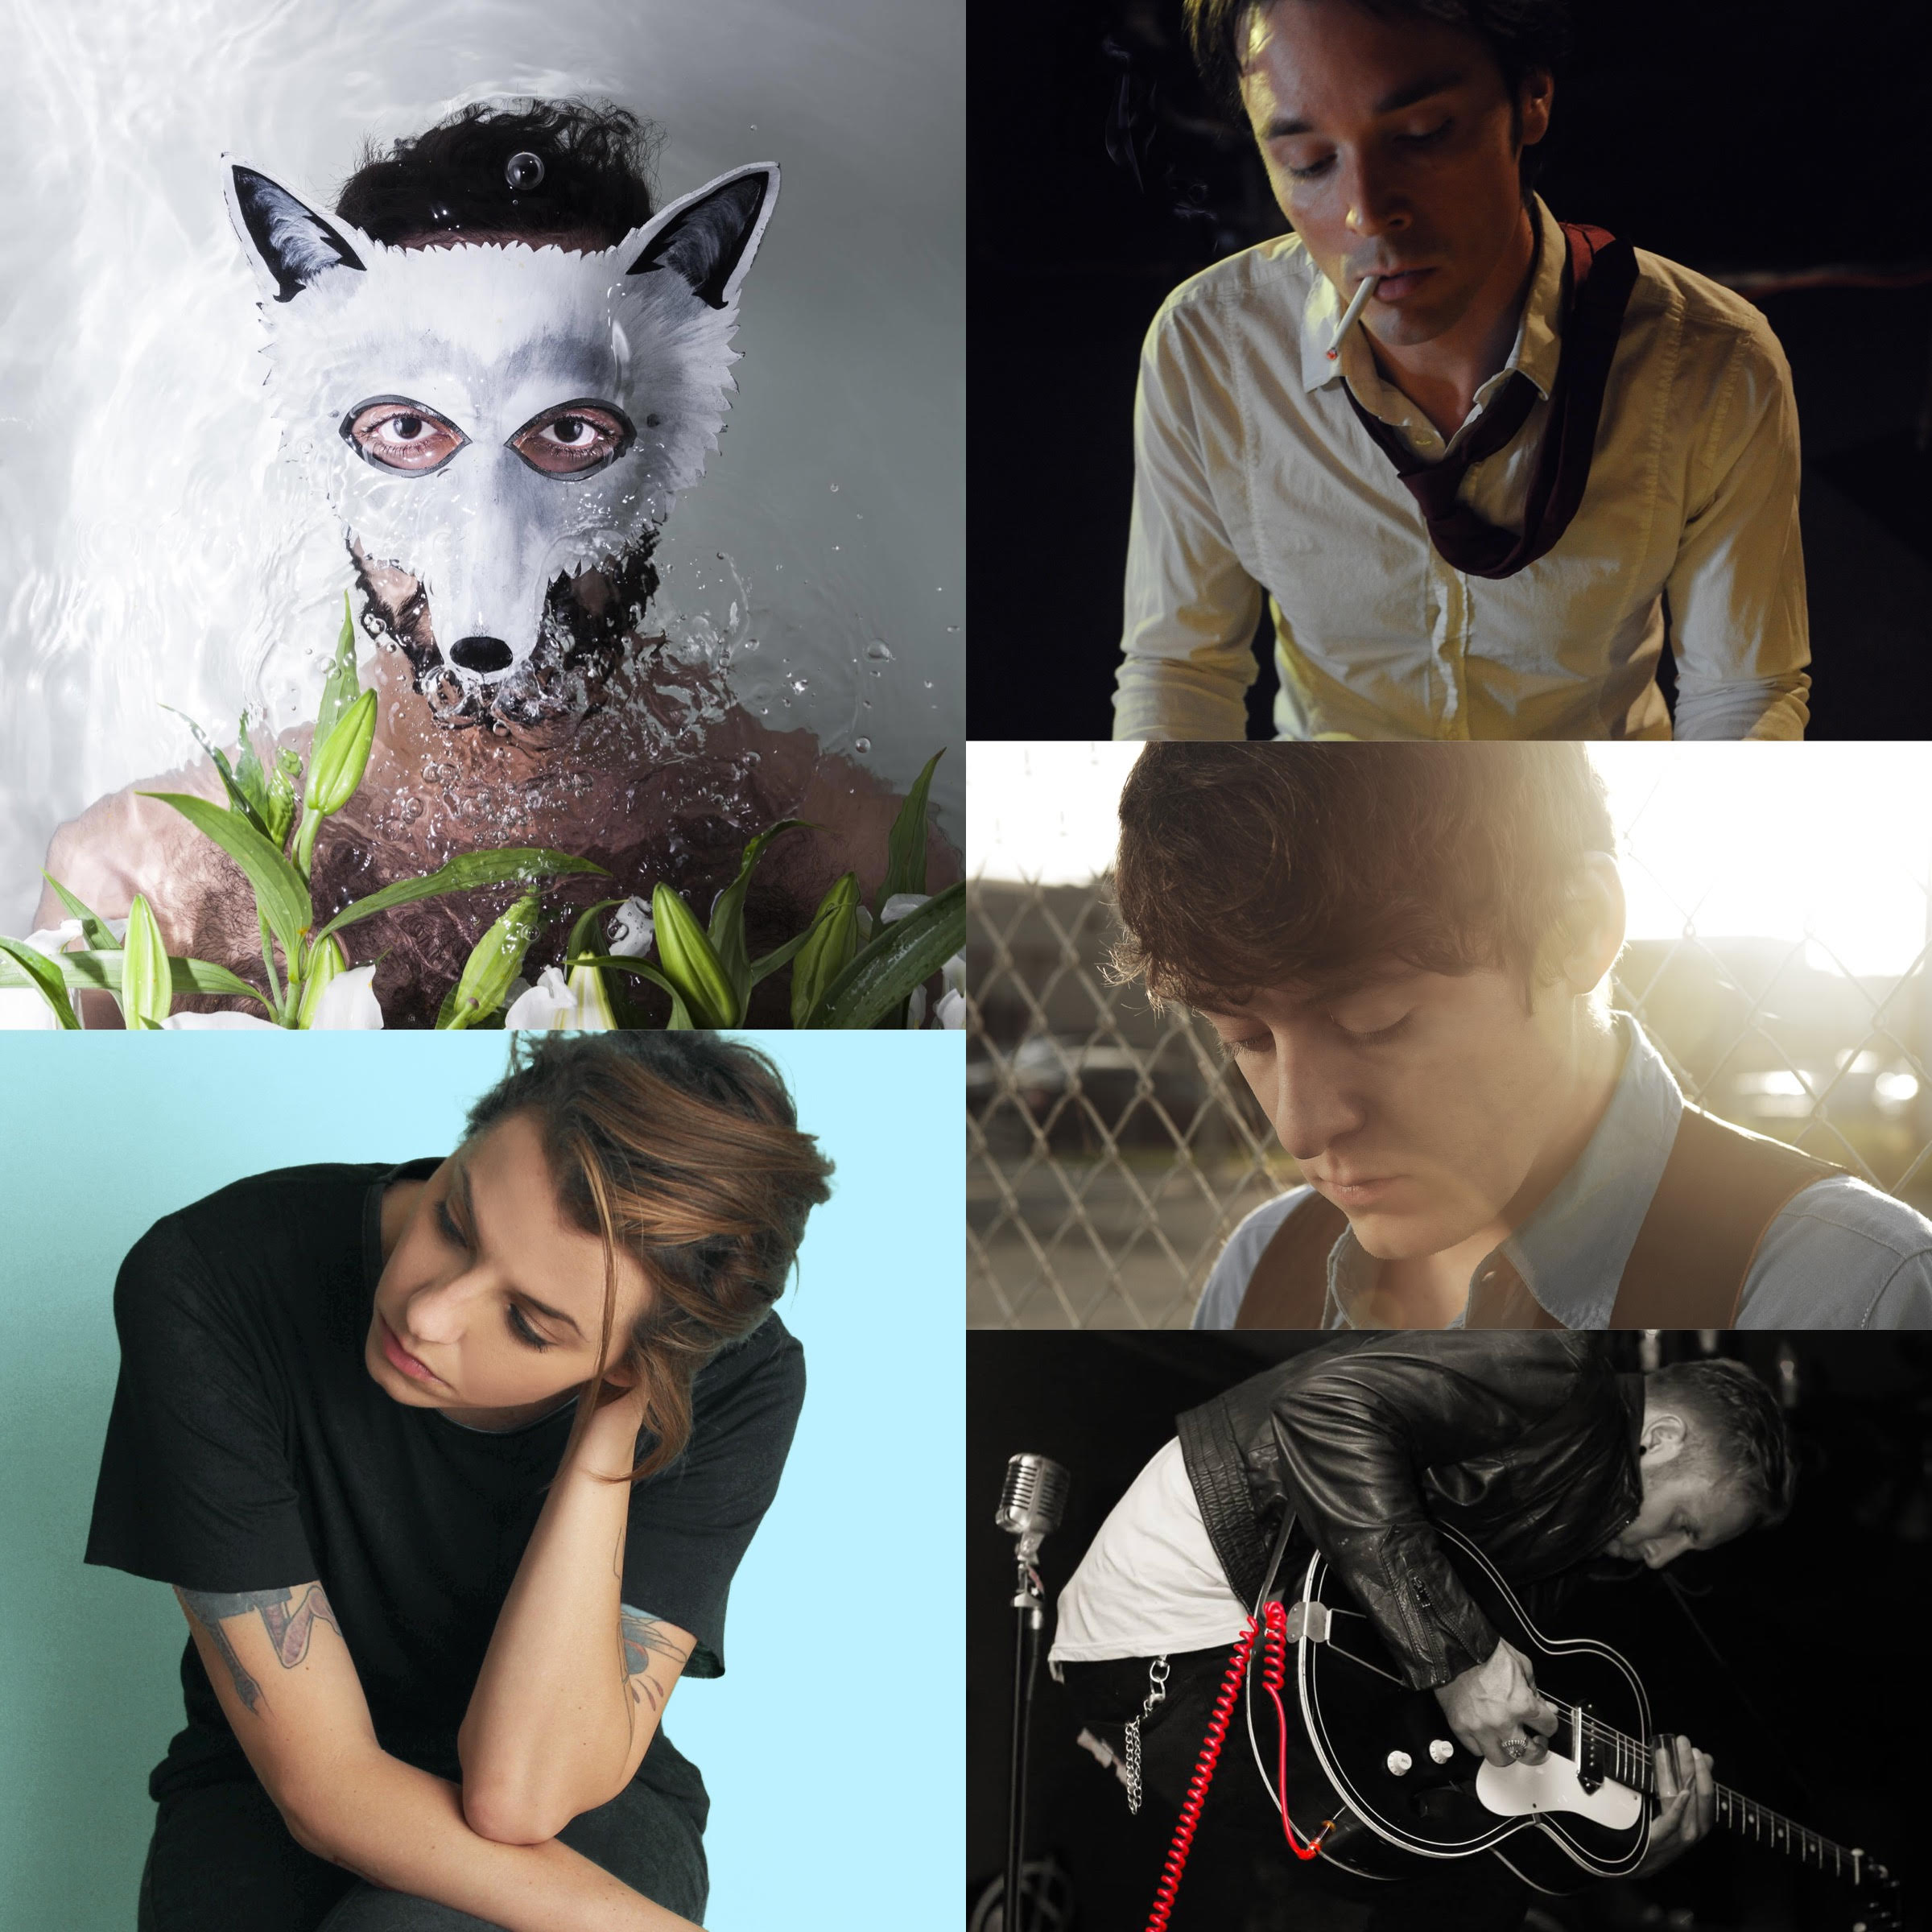 Clockwise: Wolf Colony, KaiL Baxley, Jon Lindsday, Low Volts, Ellie Herring